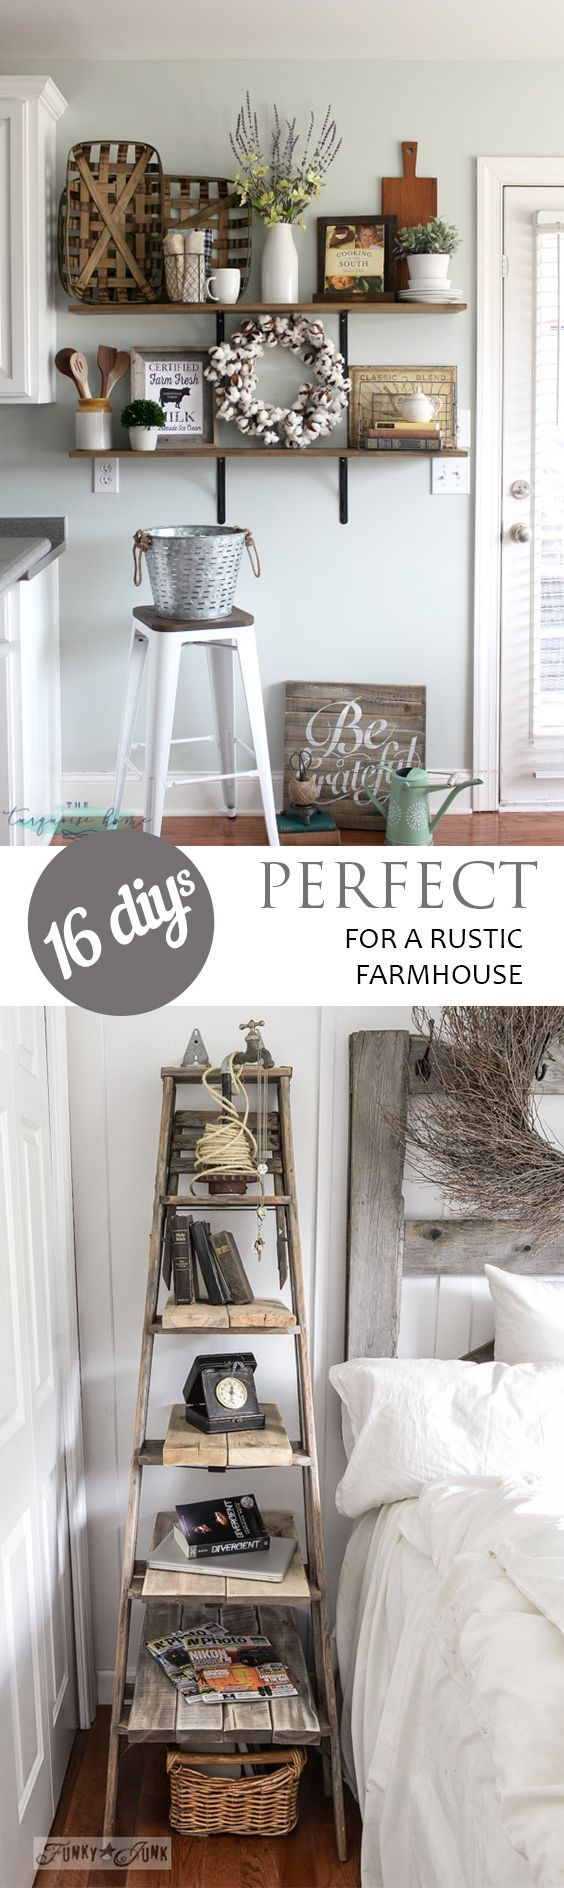 16 DIYs Perfect for a Rustic Farmhouse  Rustic Home DecoratingEasy. Best 25  Easy home decor ideas on Pinterest   Kitchen sink